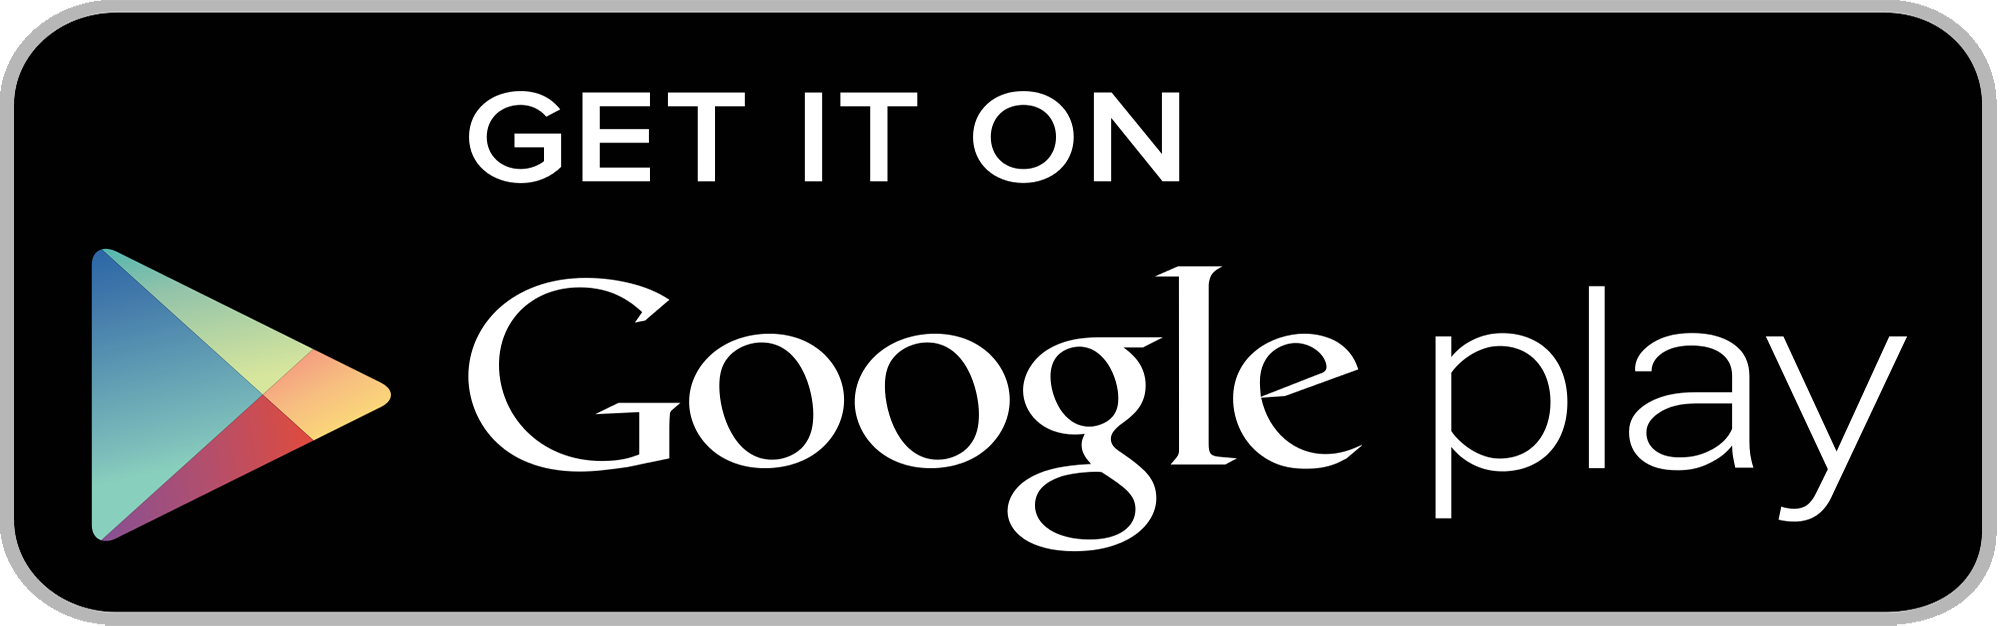 Google-play-badge PlusPng.com  - Get It On Google Play Badge PNG